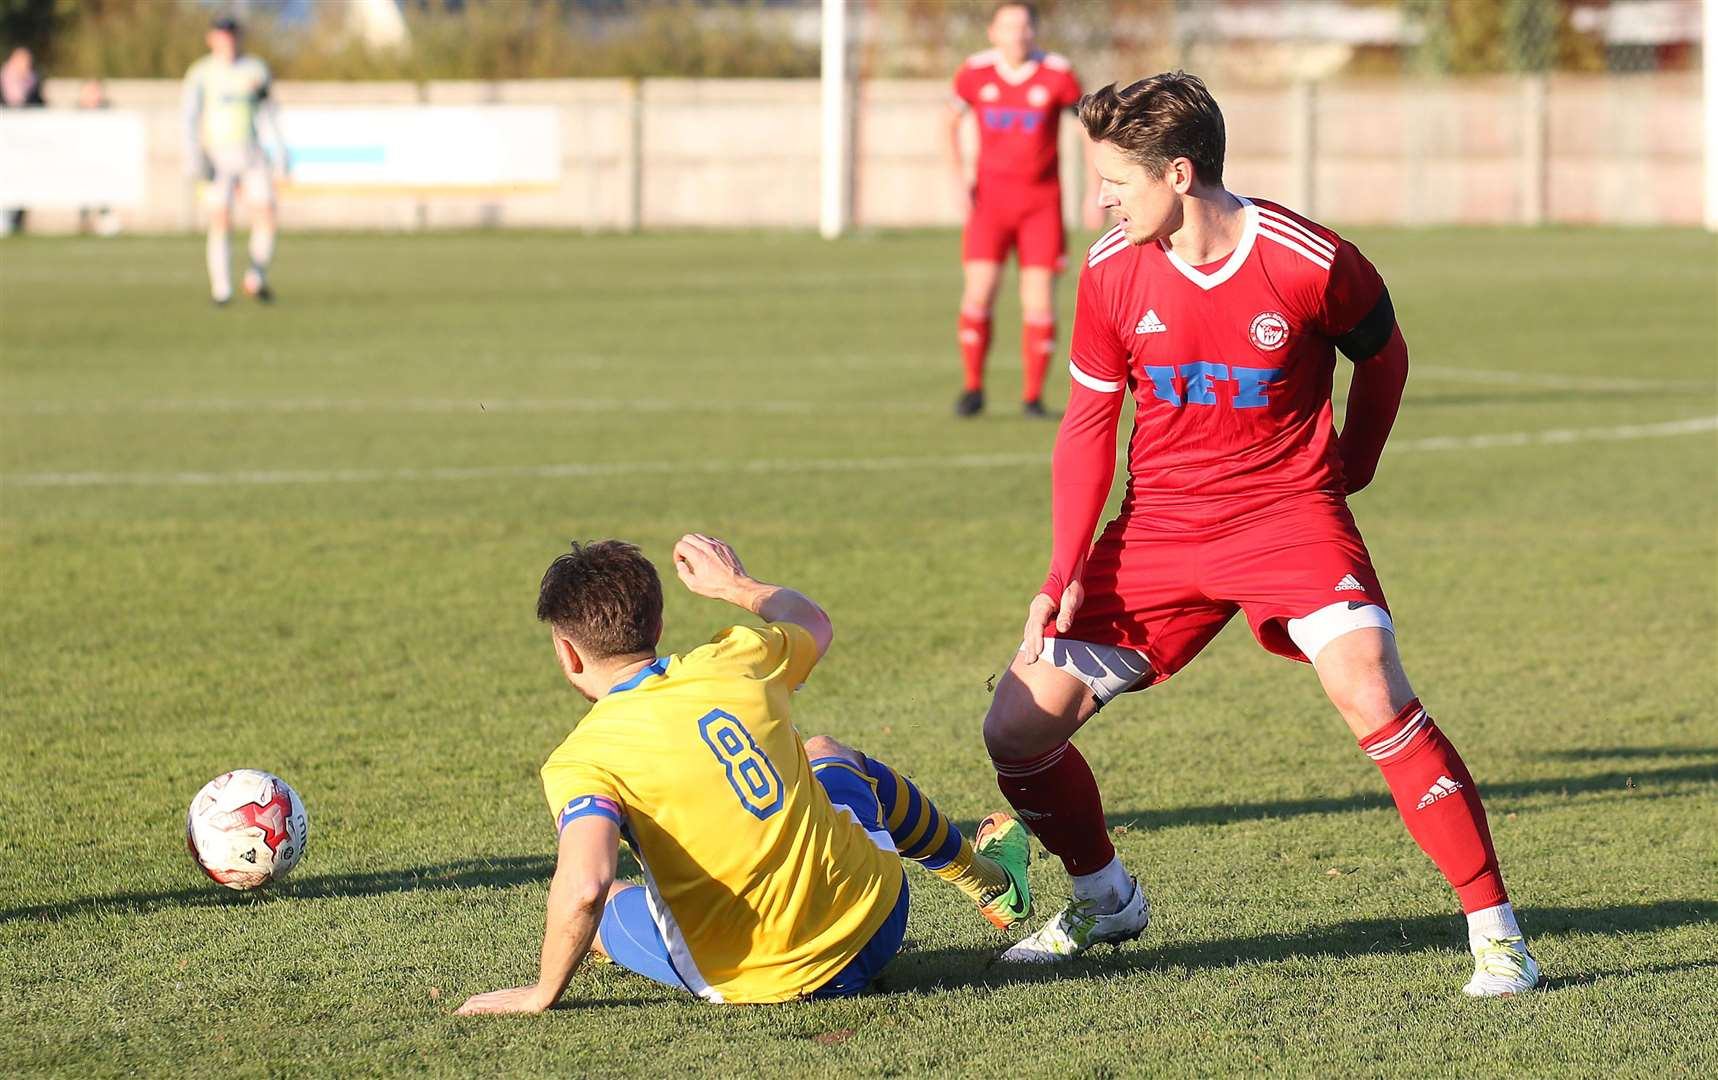 Haverhill Rovers v Newmarket Town - Newmarkets Jack Watson and Haverhills Josh Simpson..Pic - Richard Marsham. (5187137)